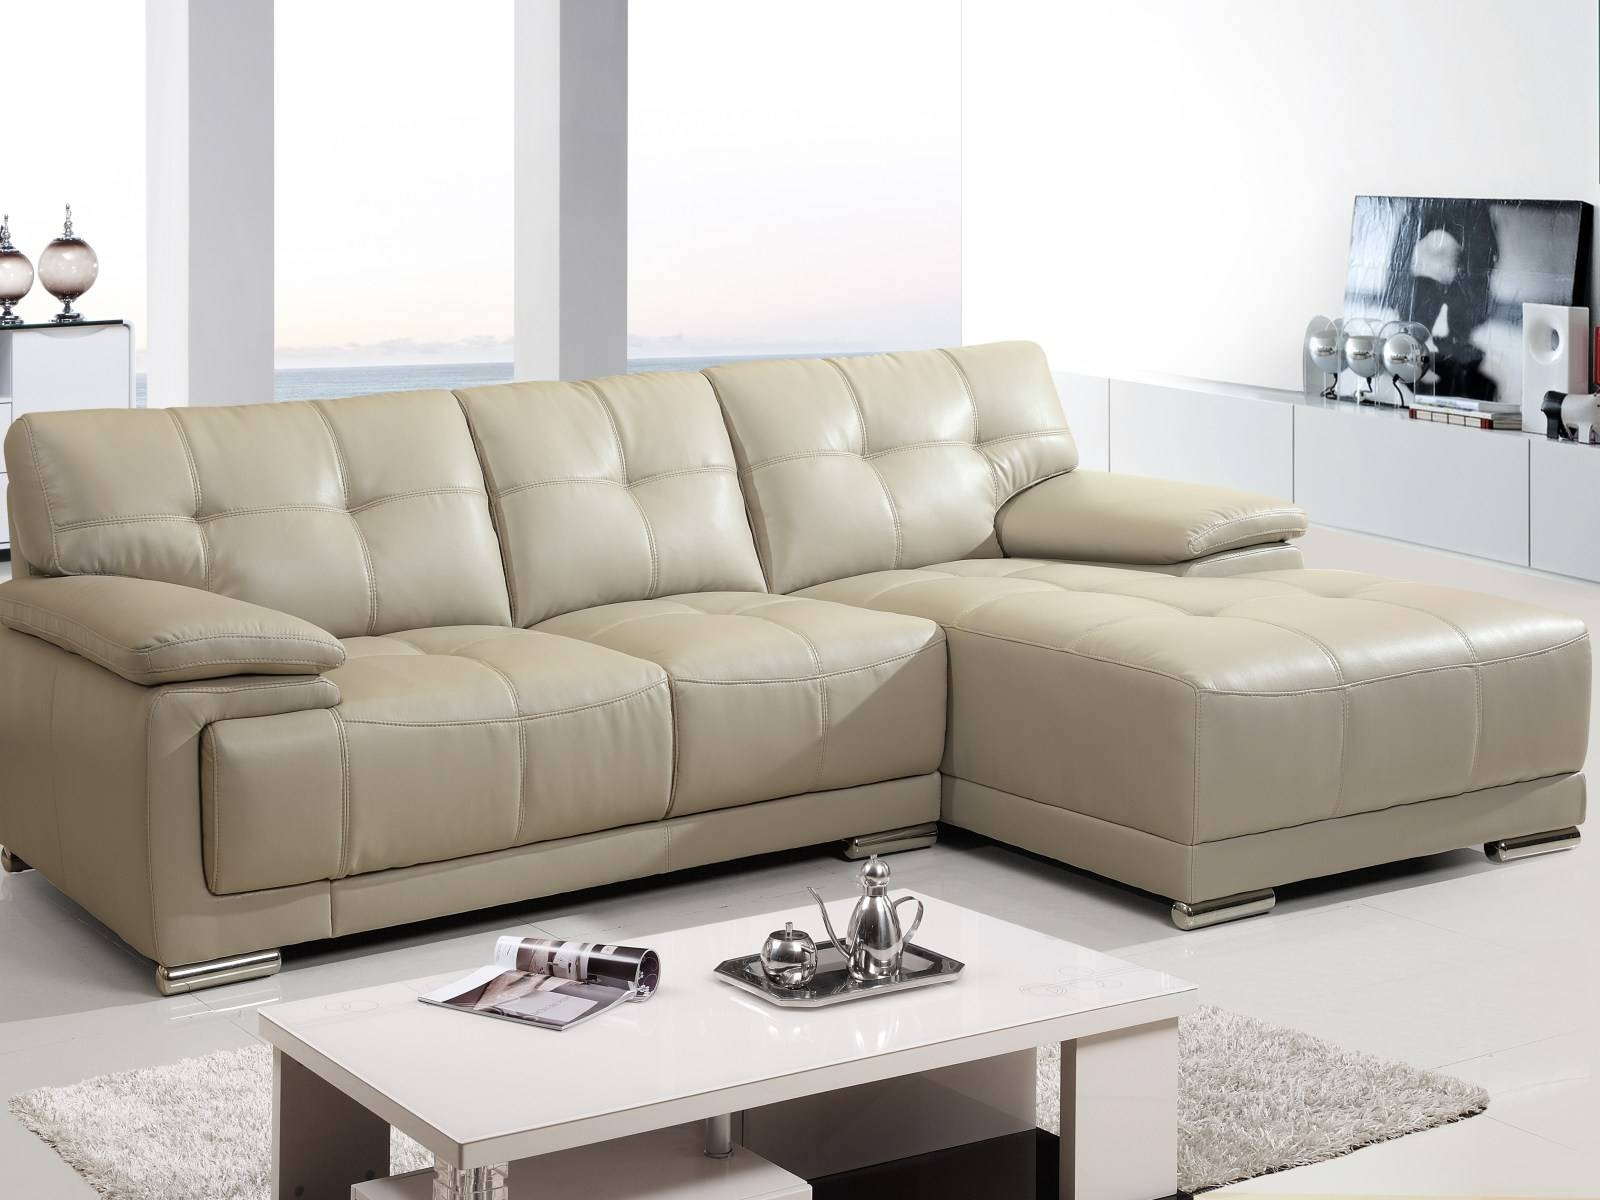 ▻ Sofa : 27 Cool With White Leather Sectional Sleeper Sofa S3Net within Cool Sofa Ideas (Image 26 of 30)